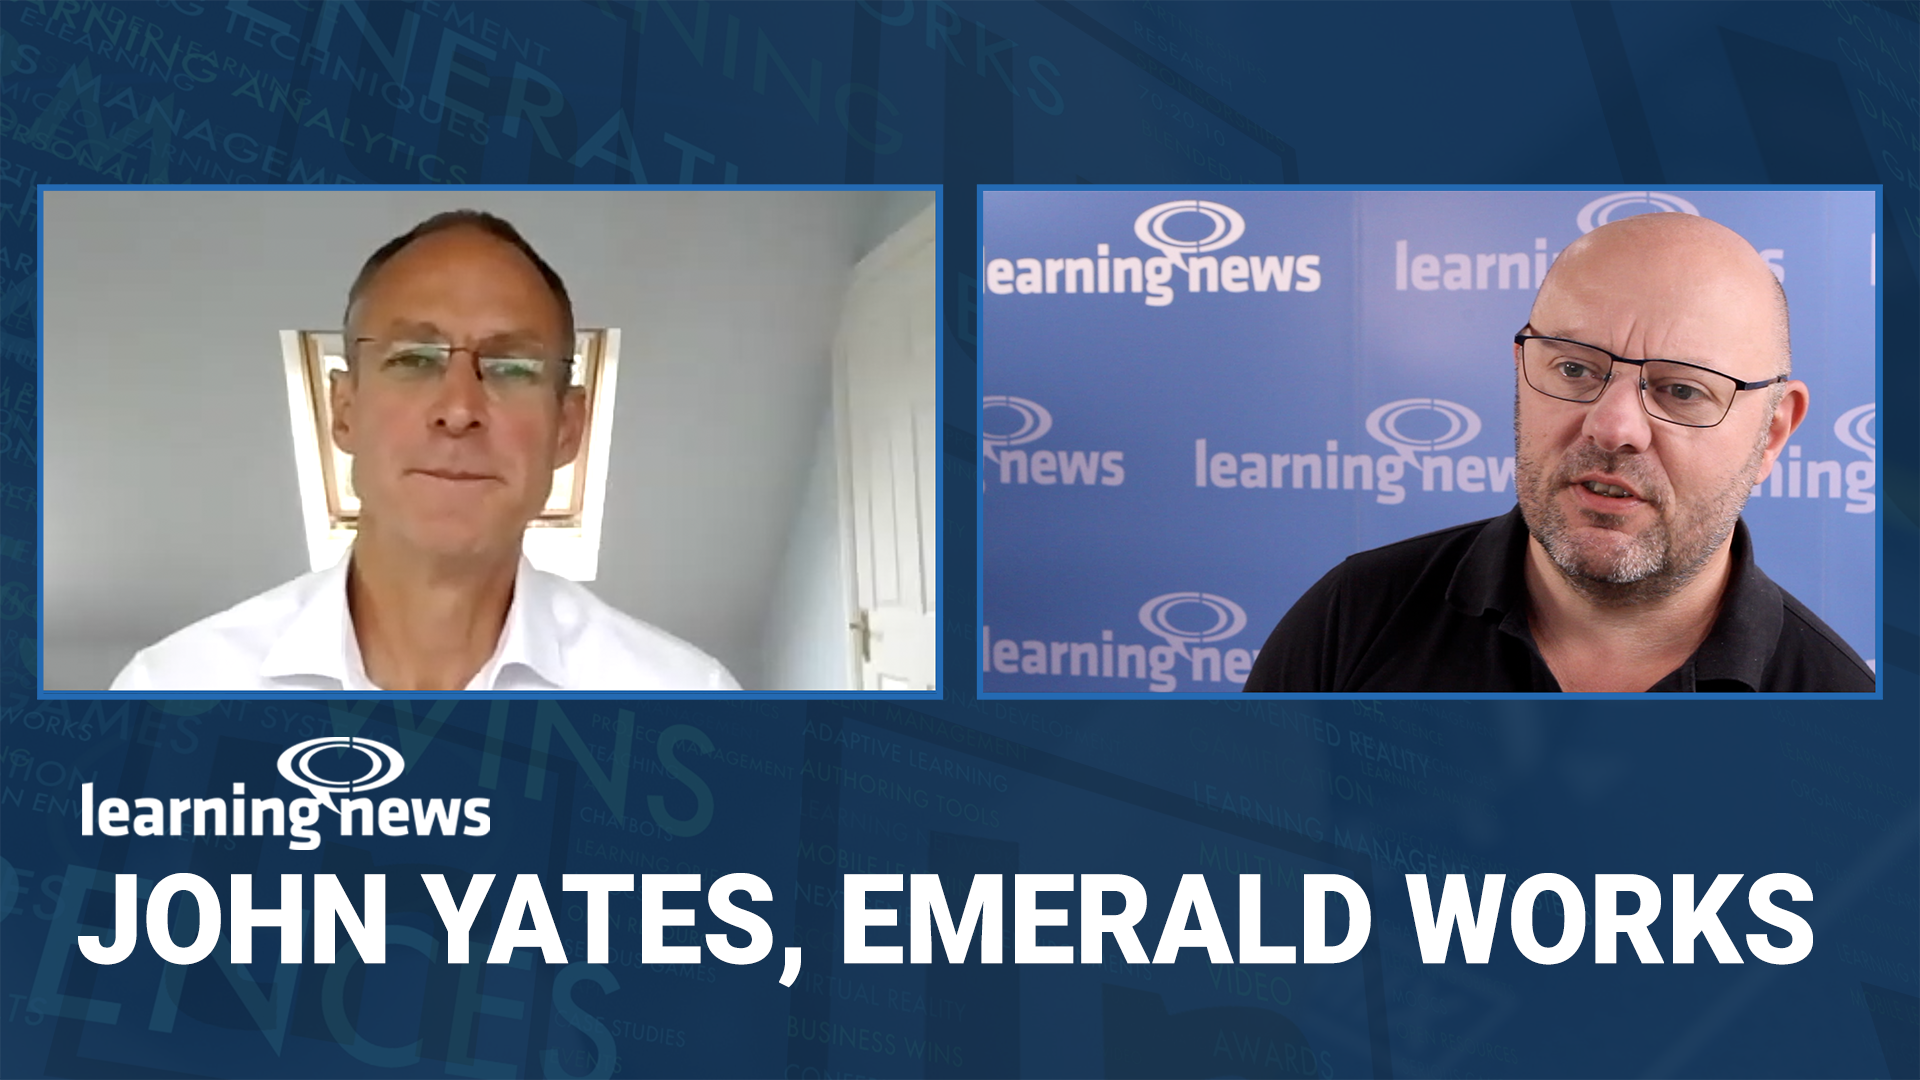 John Yates in discussion with Learning News, following his appointment as CEO at Emerald Works